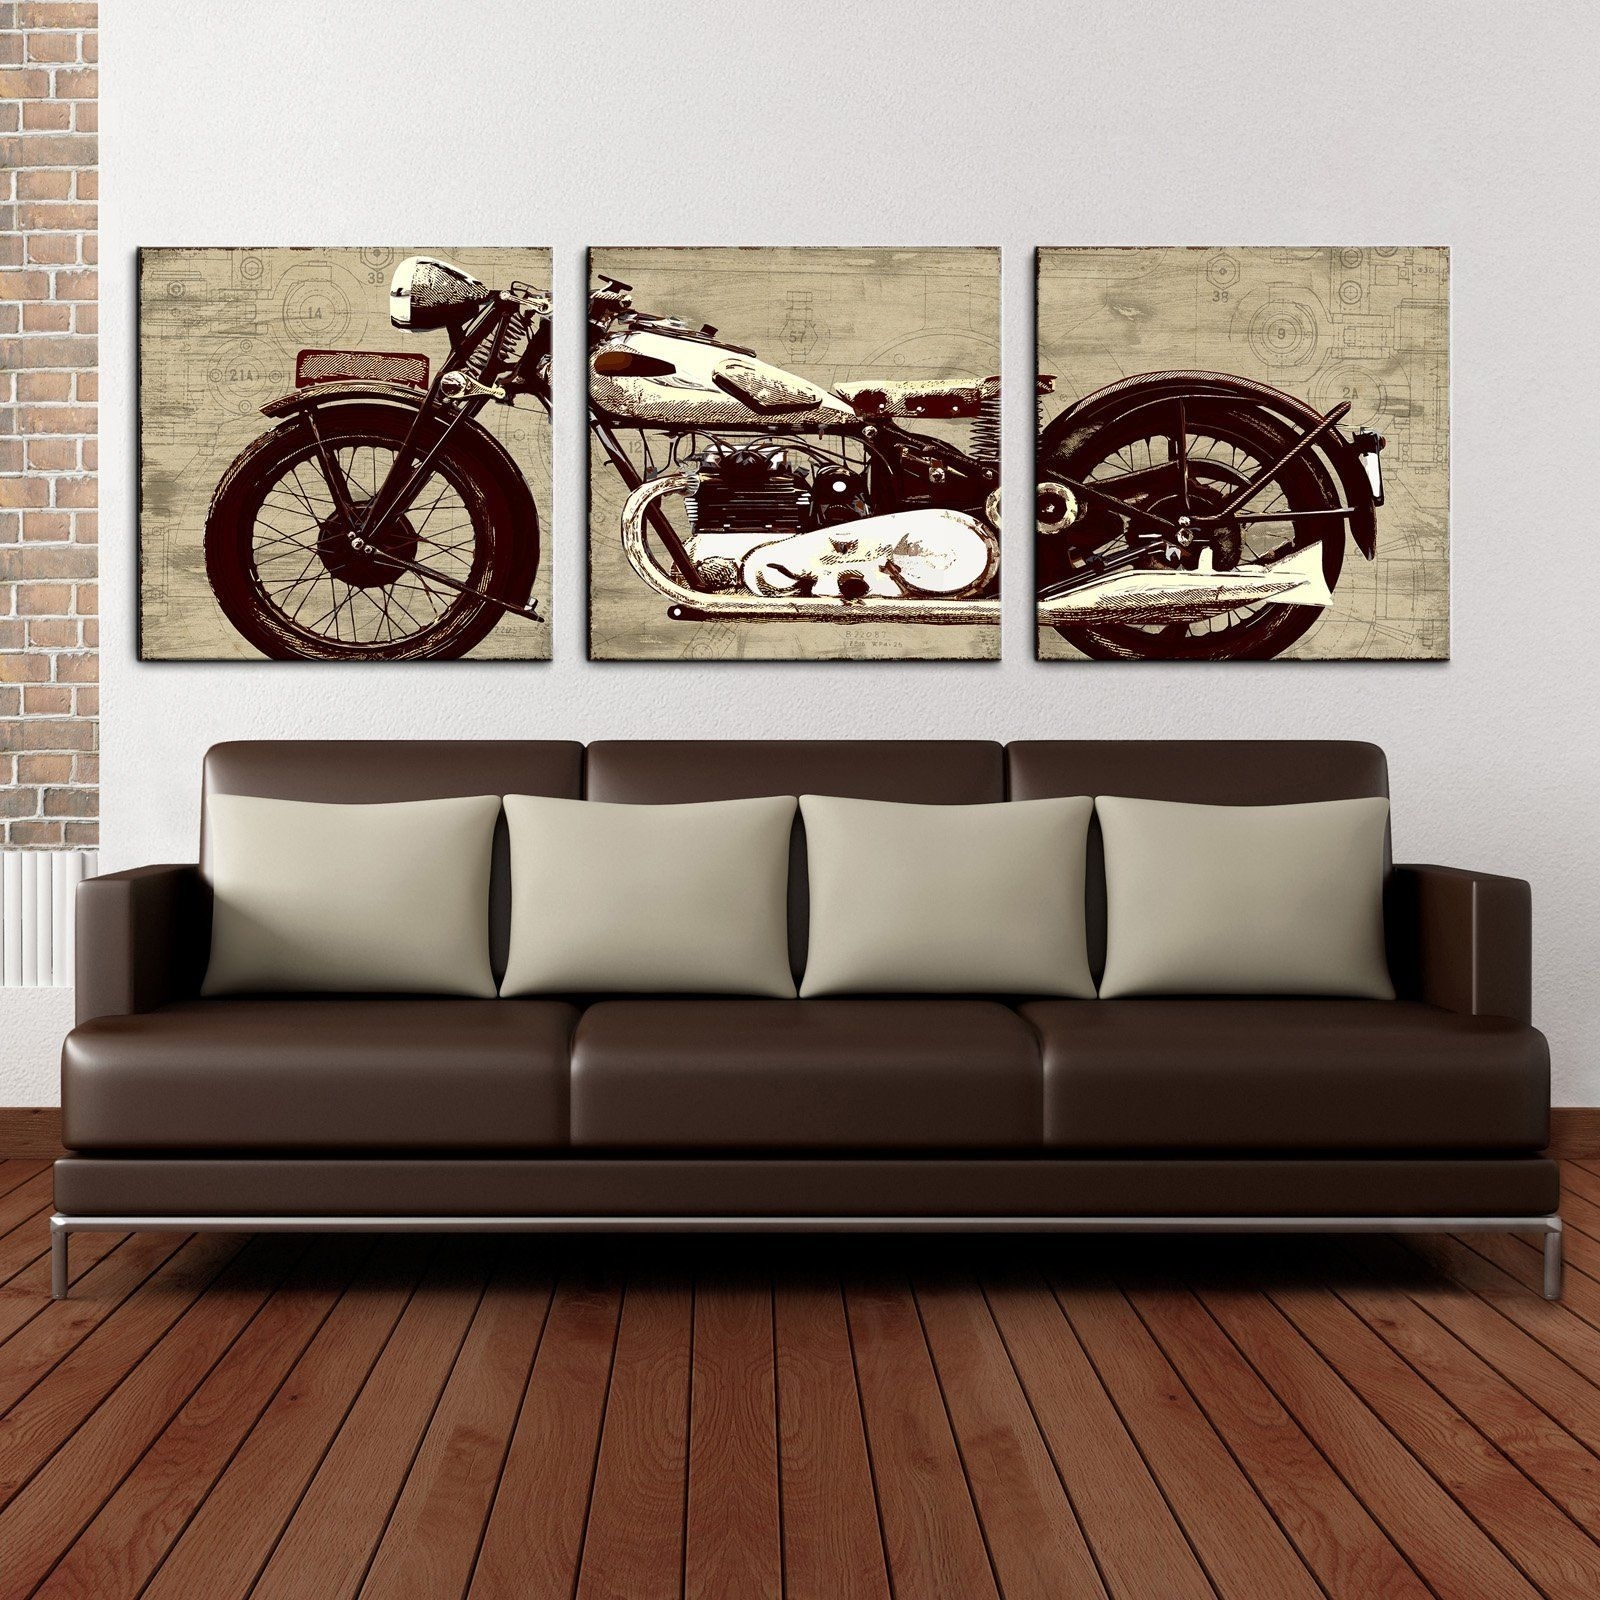 Amazing Design Ideas Wall Art For Men Home Designing Inspiration 50 Within Most Up To Date Wall Art For Men (View 3 of 15)